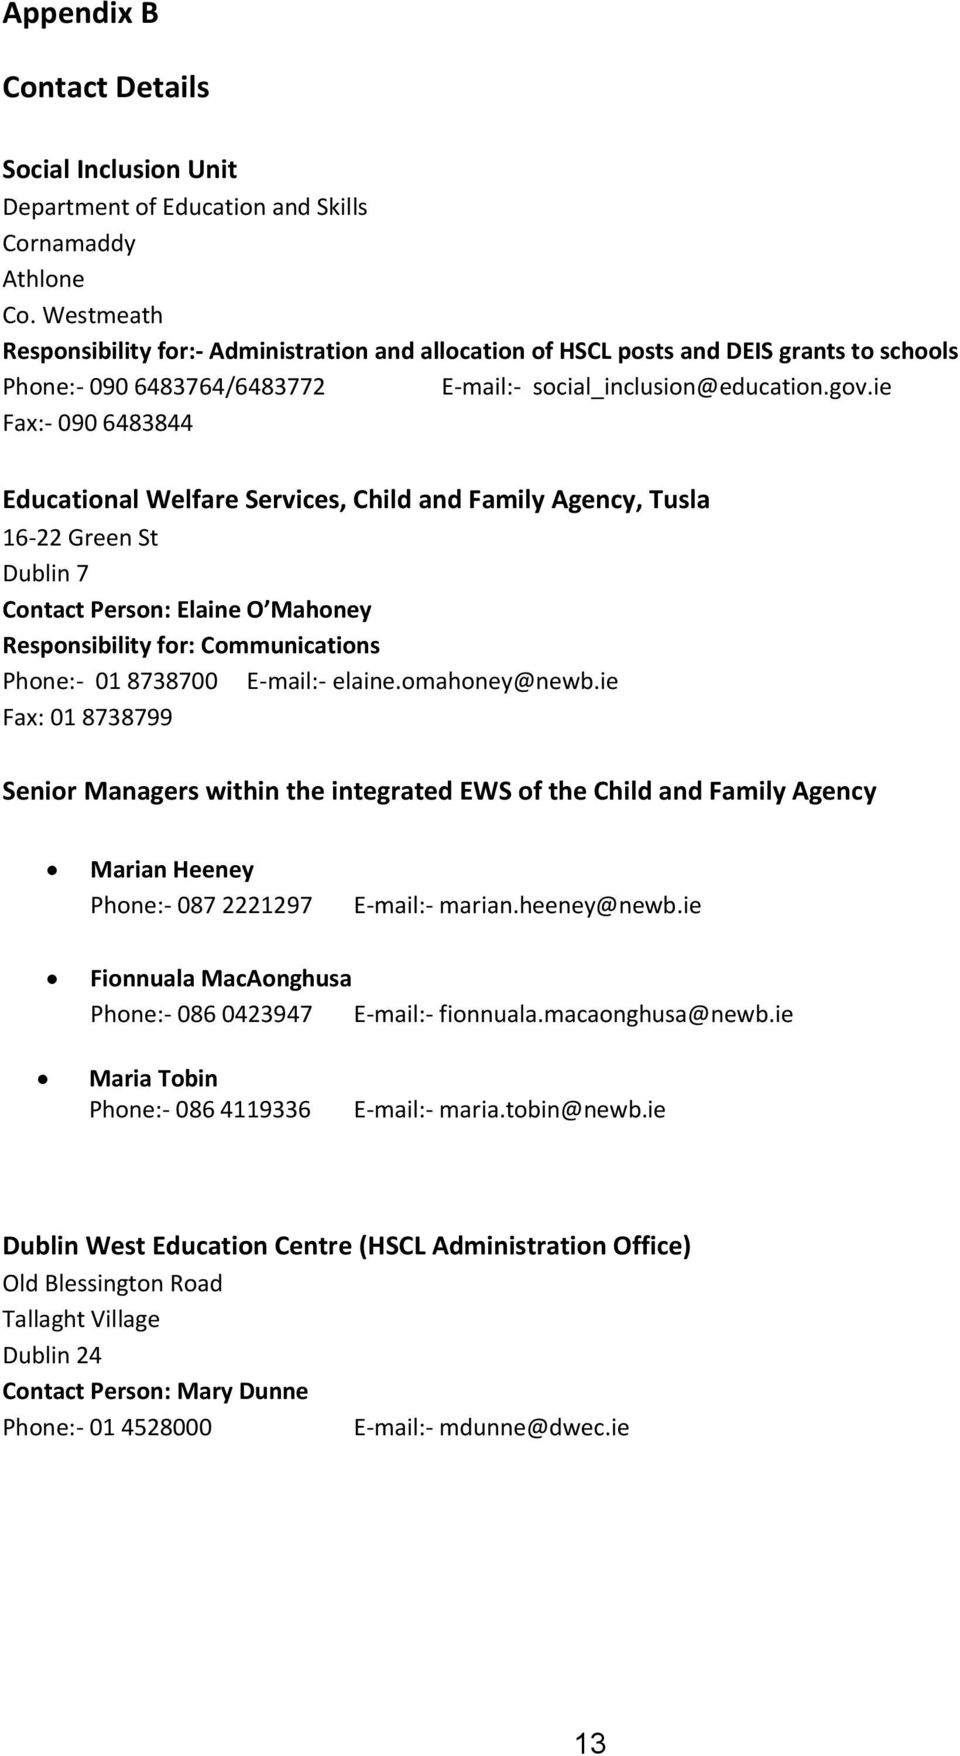 ie Fax:- 090 6483844 Educational Welfare Services, Child and Family Agency, Tusla 16-22 Green St Dublin 7 Contact Person: Elaine O Mahoney Responsibility for: Communications Phone:- 01 8738700